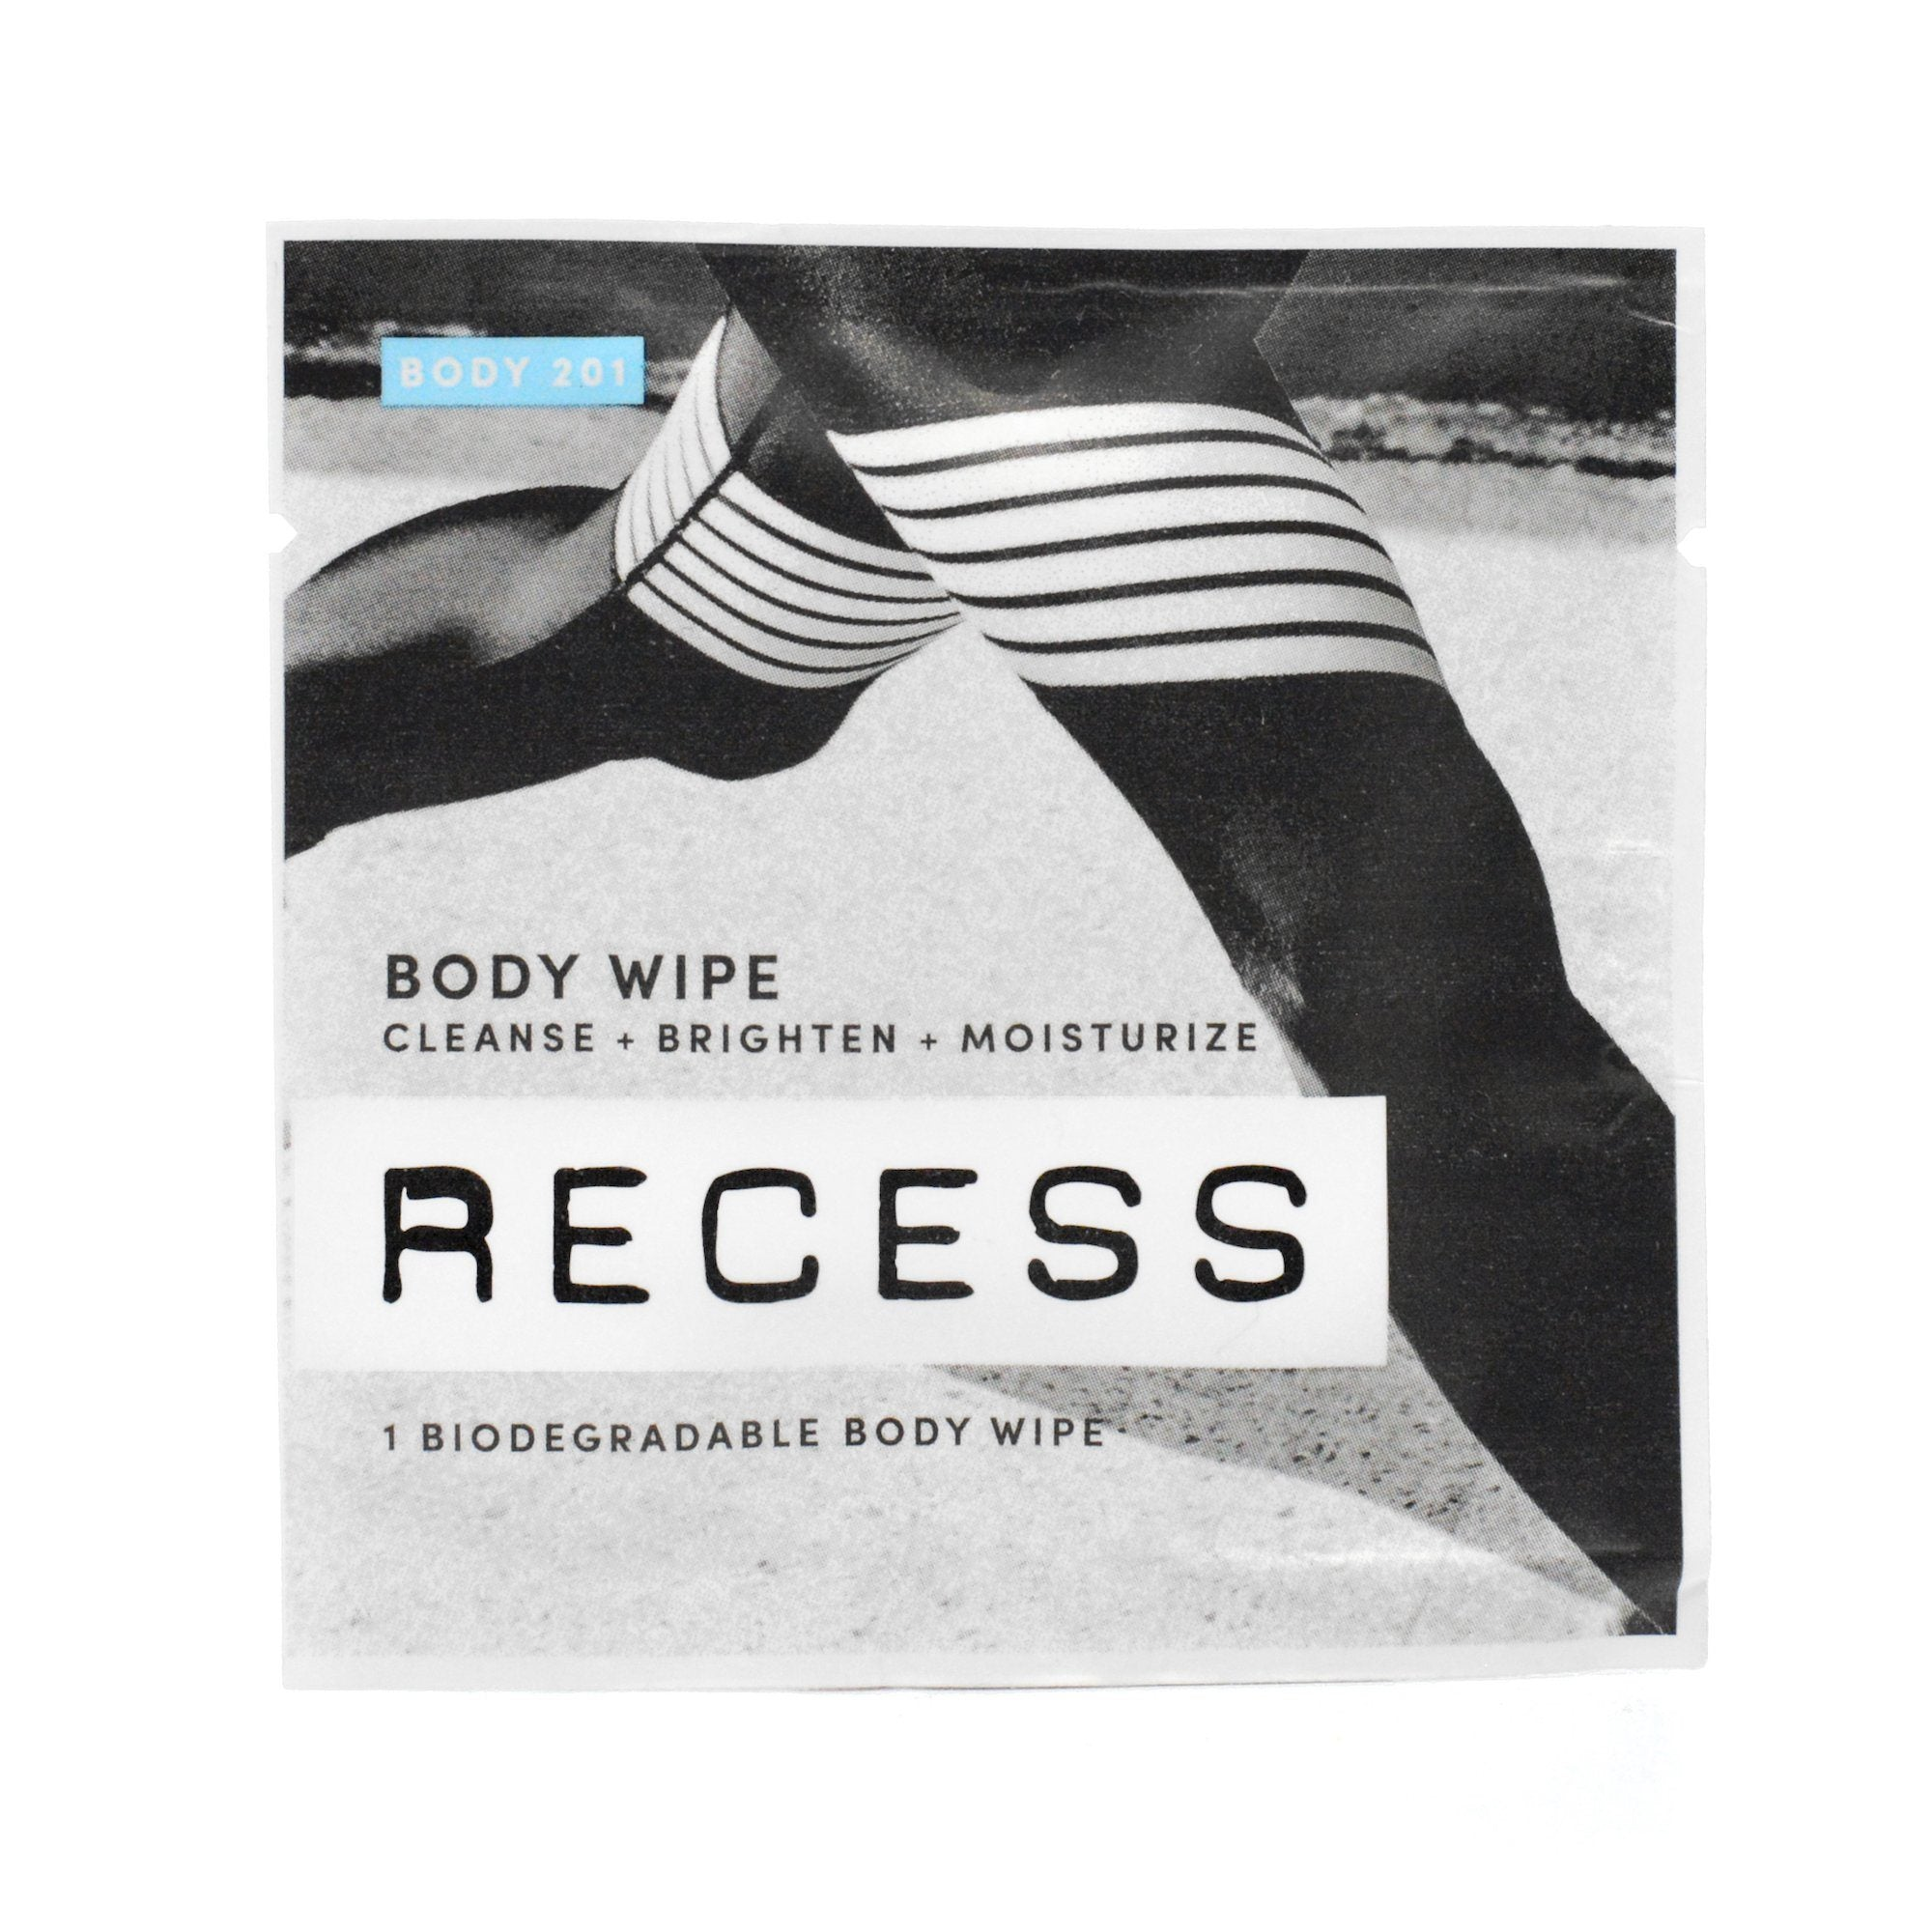 BODY 201: Body Wipes (Pack of 15) (743227588712)